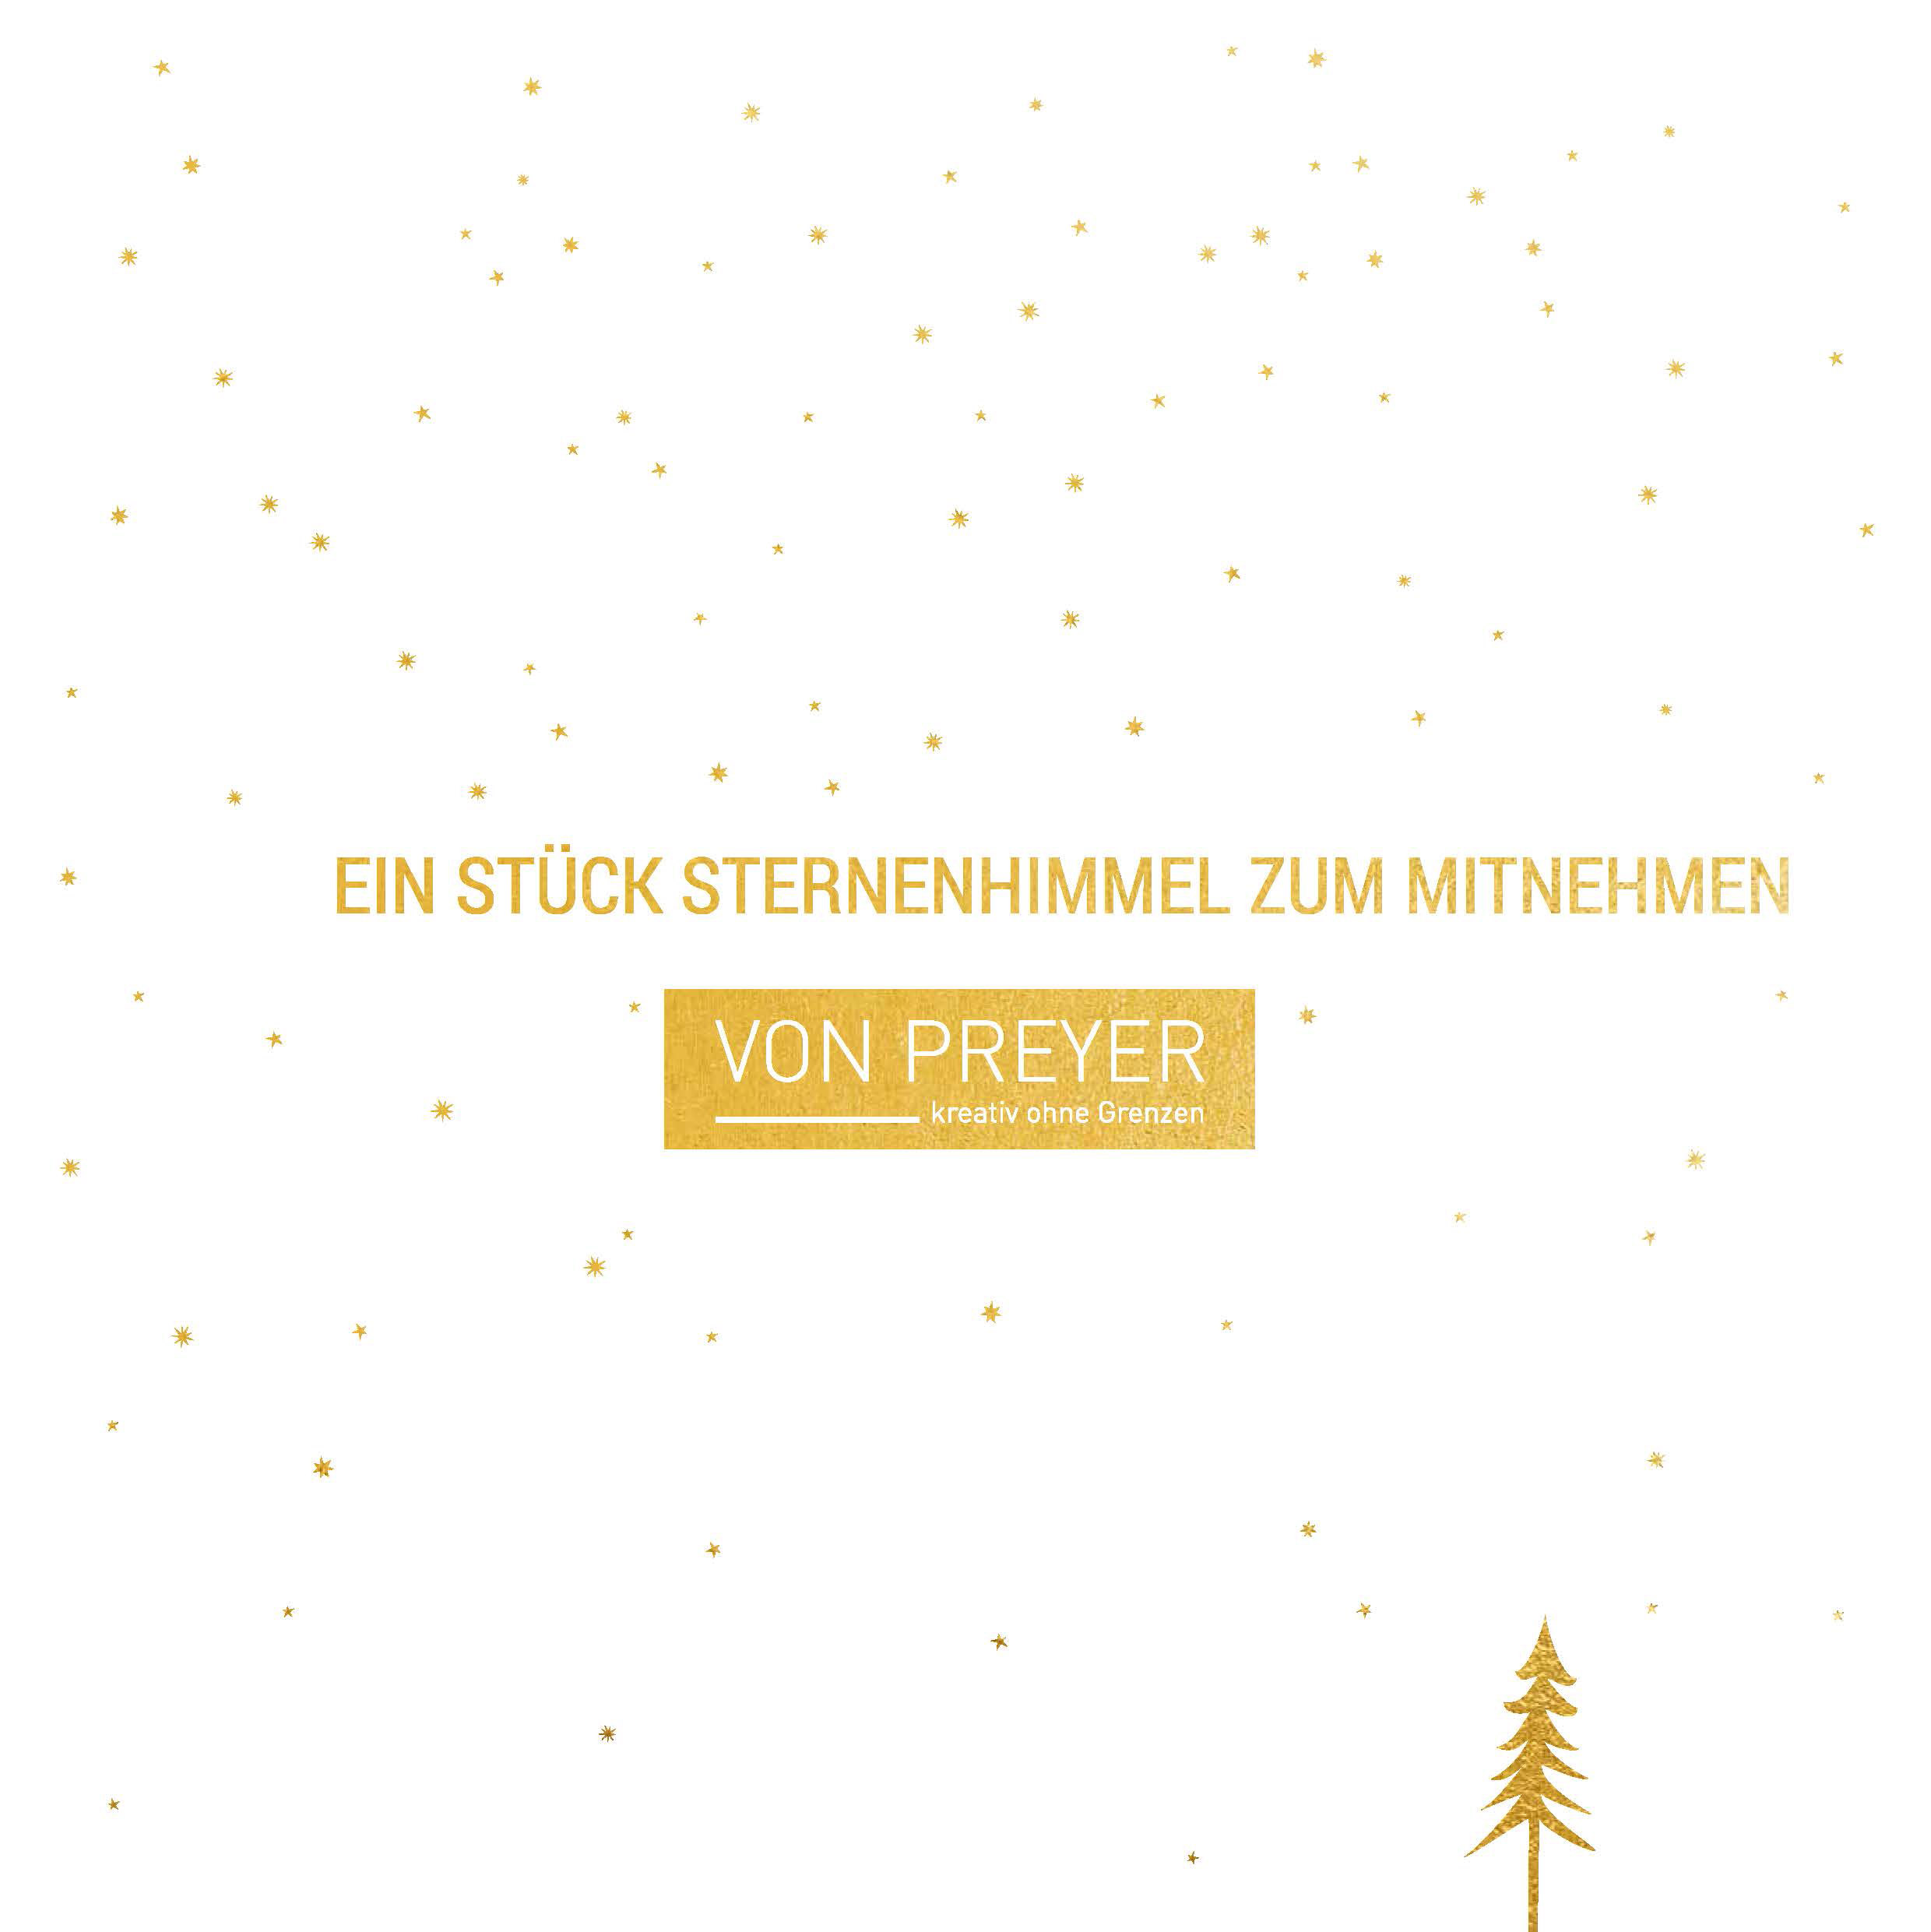 Preyer_Advent-Karte_210x210_2018_final-mitPrägungseffekt_Seite_1-li